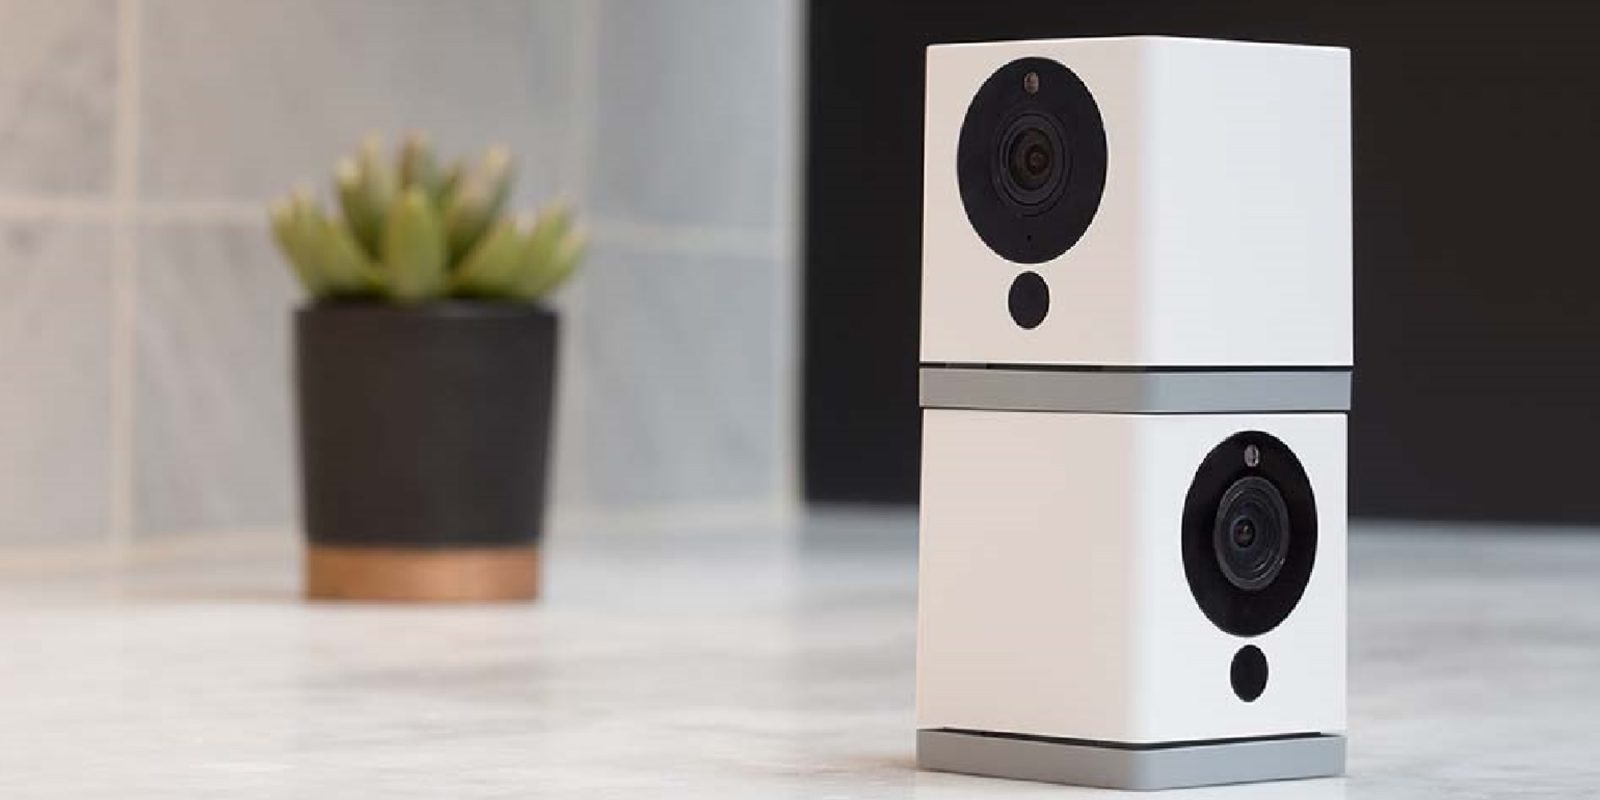 Wyze Cam v2 offers 1080p local recording, 14-days of FREE